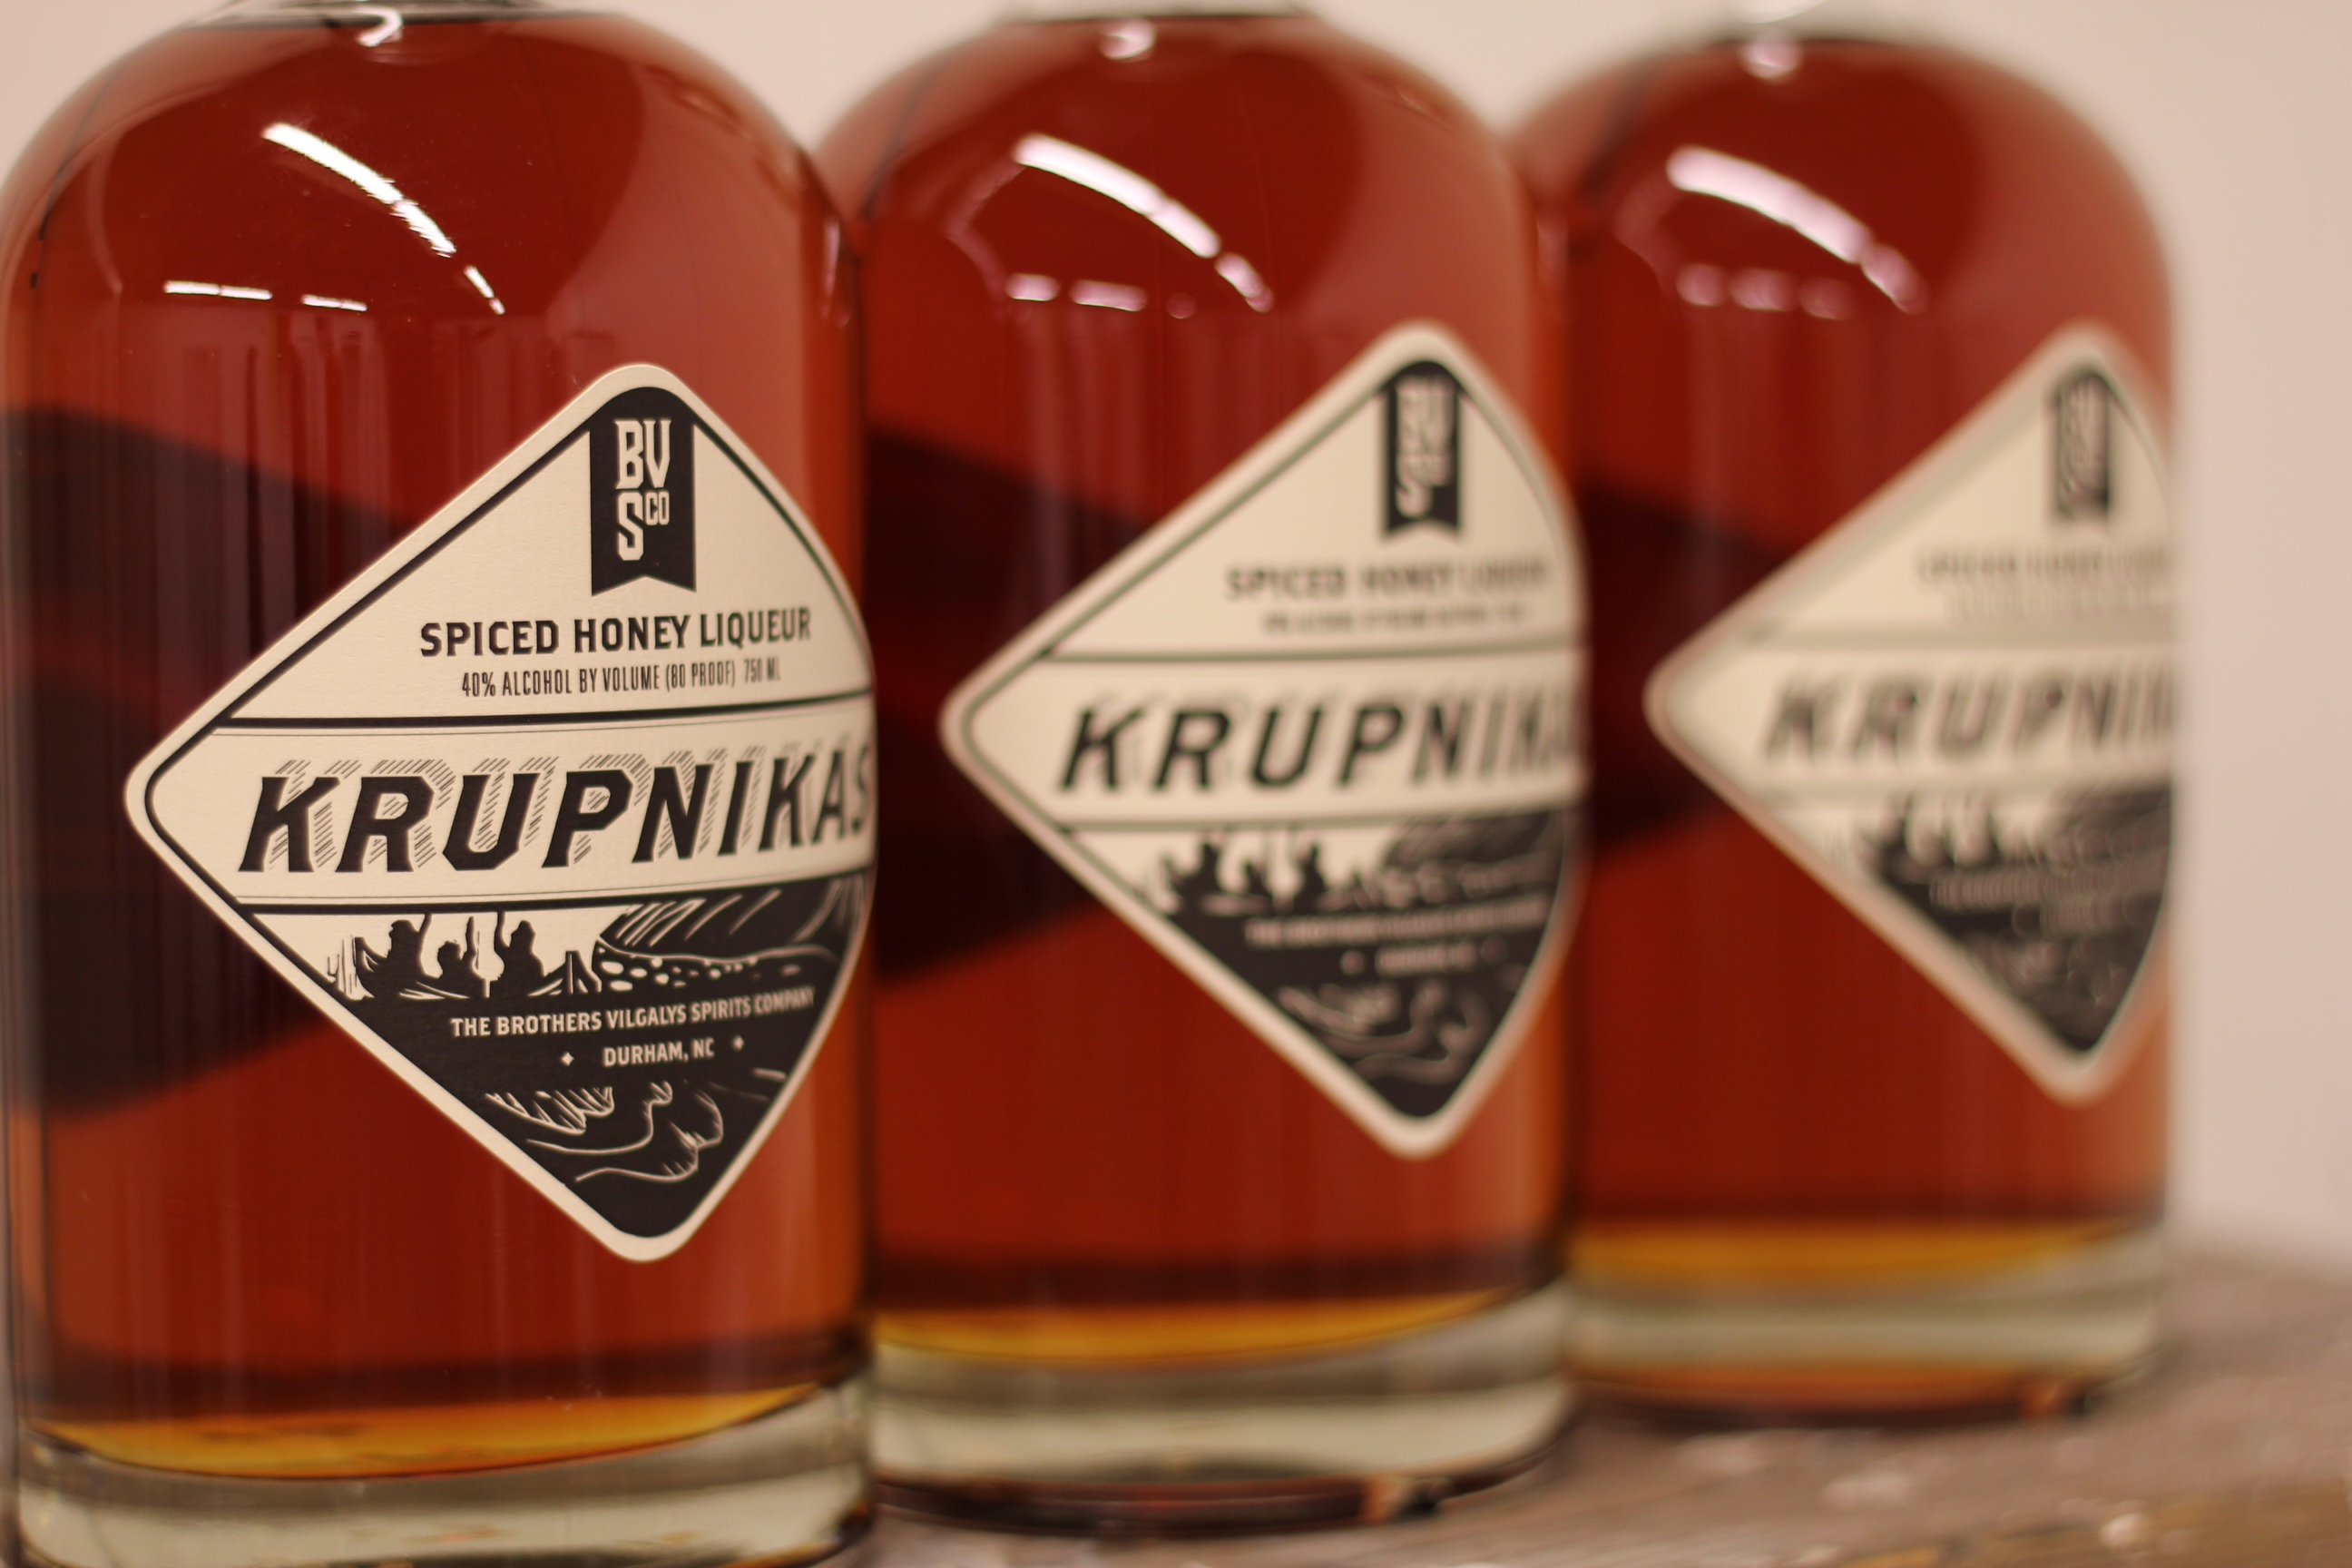 Brothers Vilgalys Krupnikas, a Spiced Honey Liqueur made in Durham, NC.